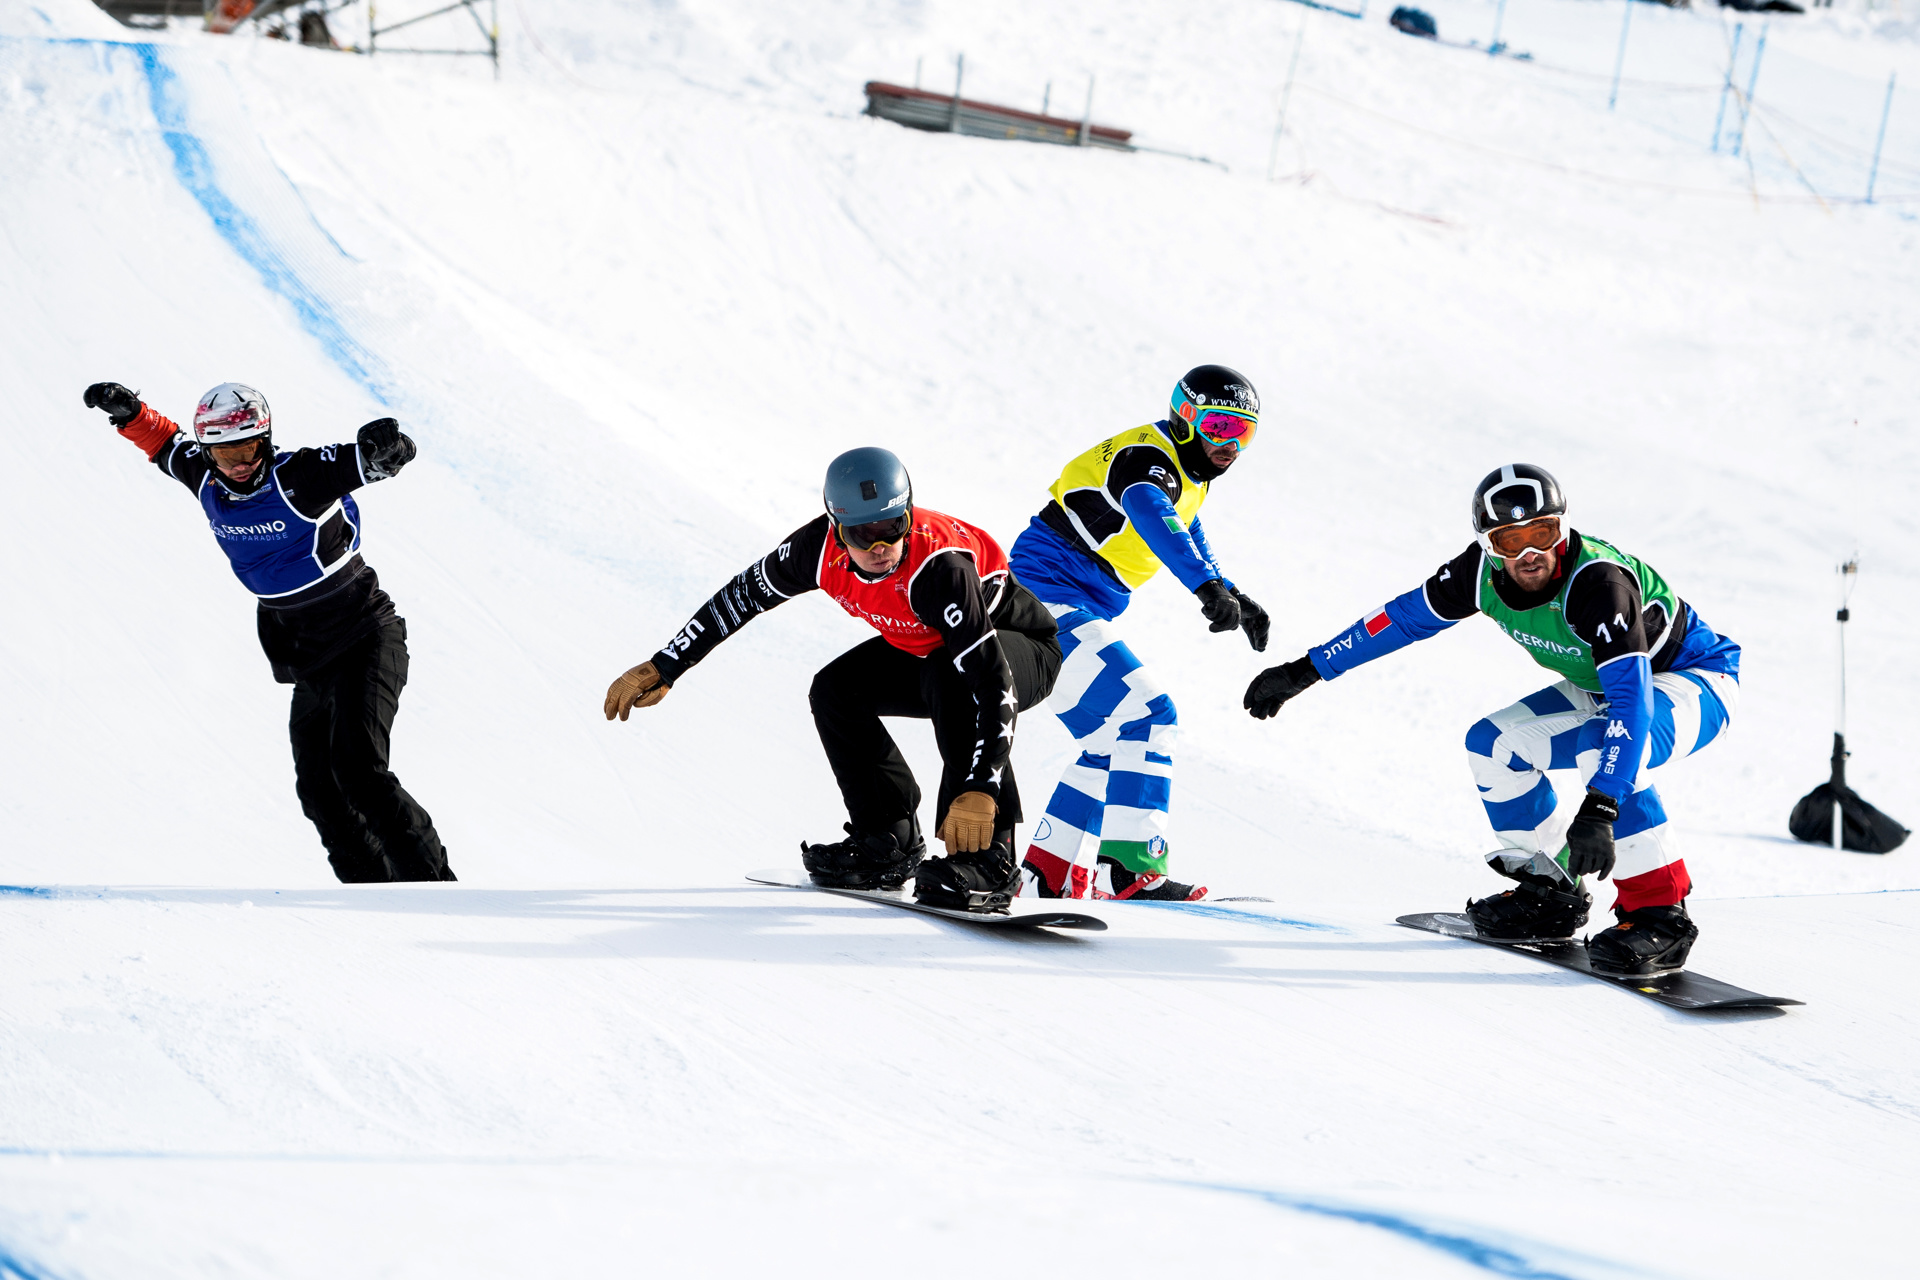 Immagine per la categoria Snowboard